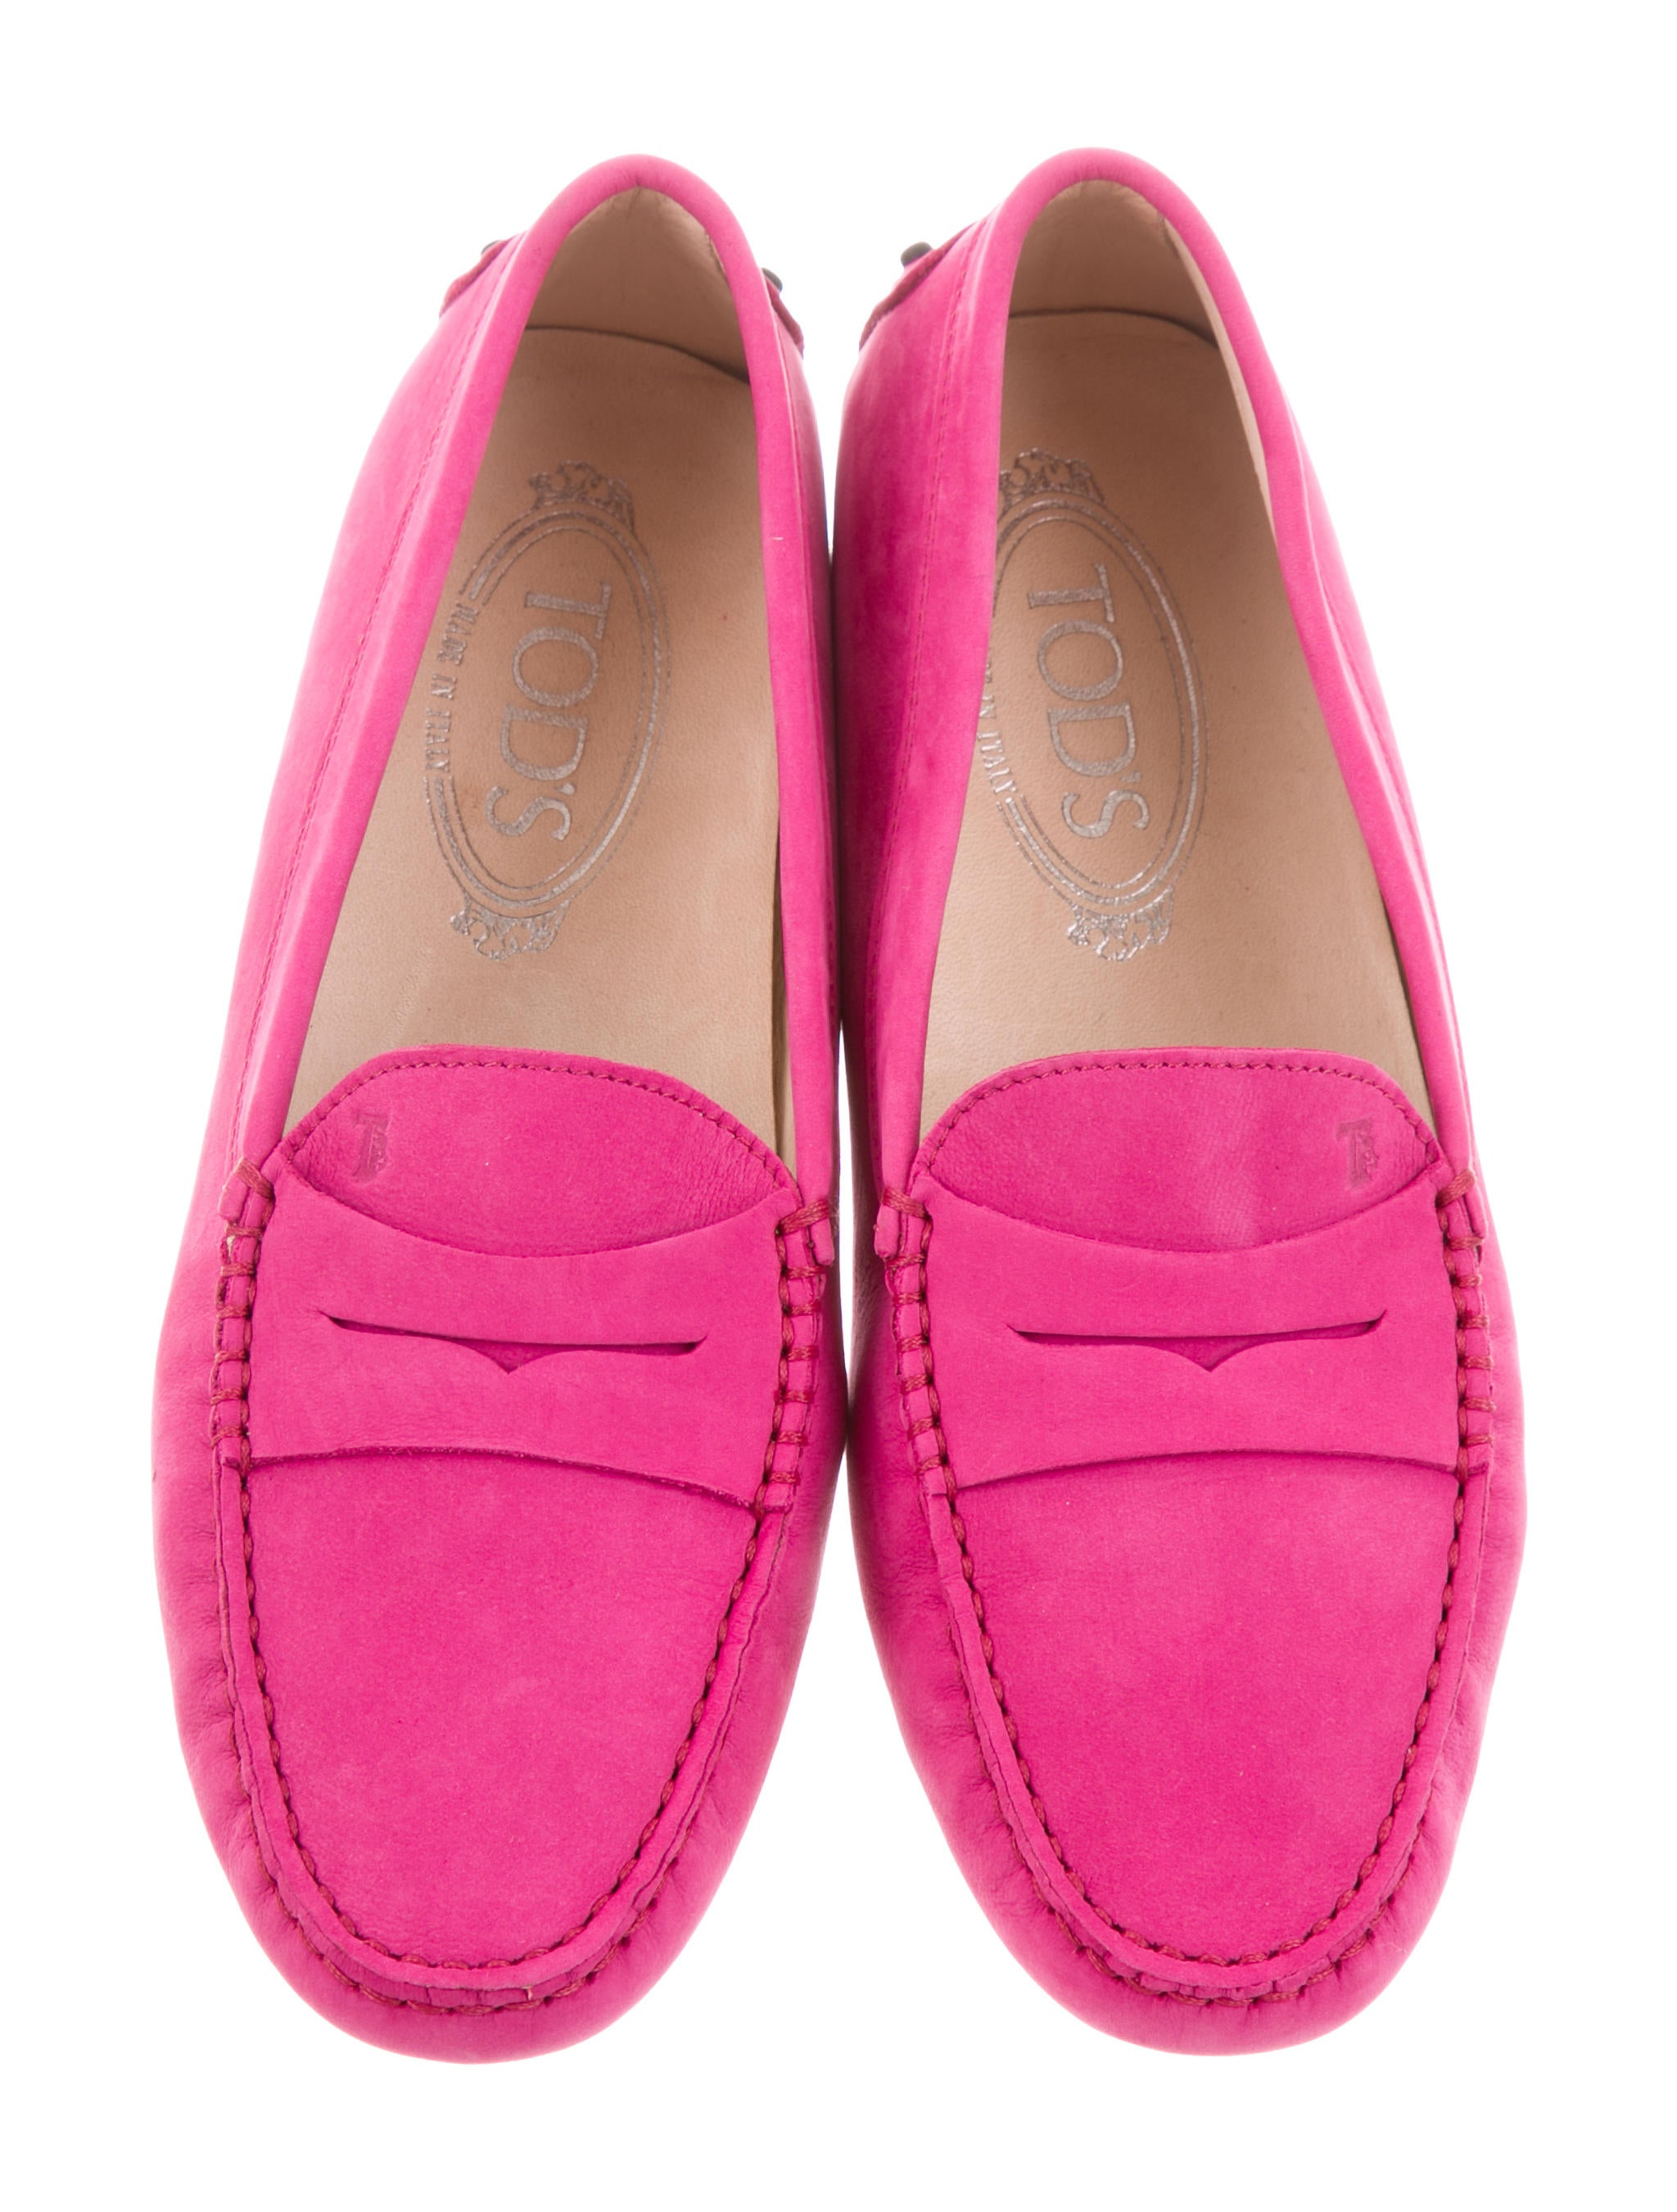 clearance cost Tod's Suede Round-Toe Flats w/ Tags outlet online shop sale cheap online low shipping fee sale online sale outlet LIsbIXpTs